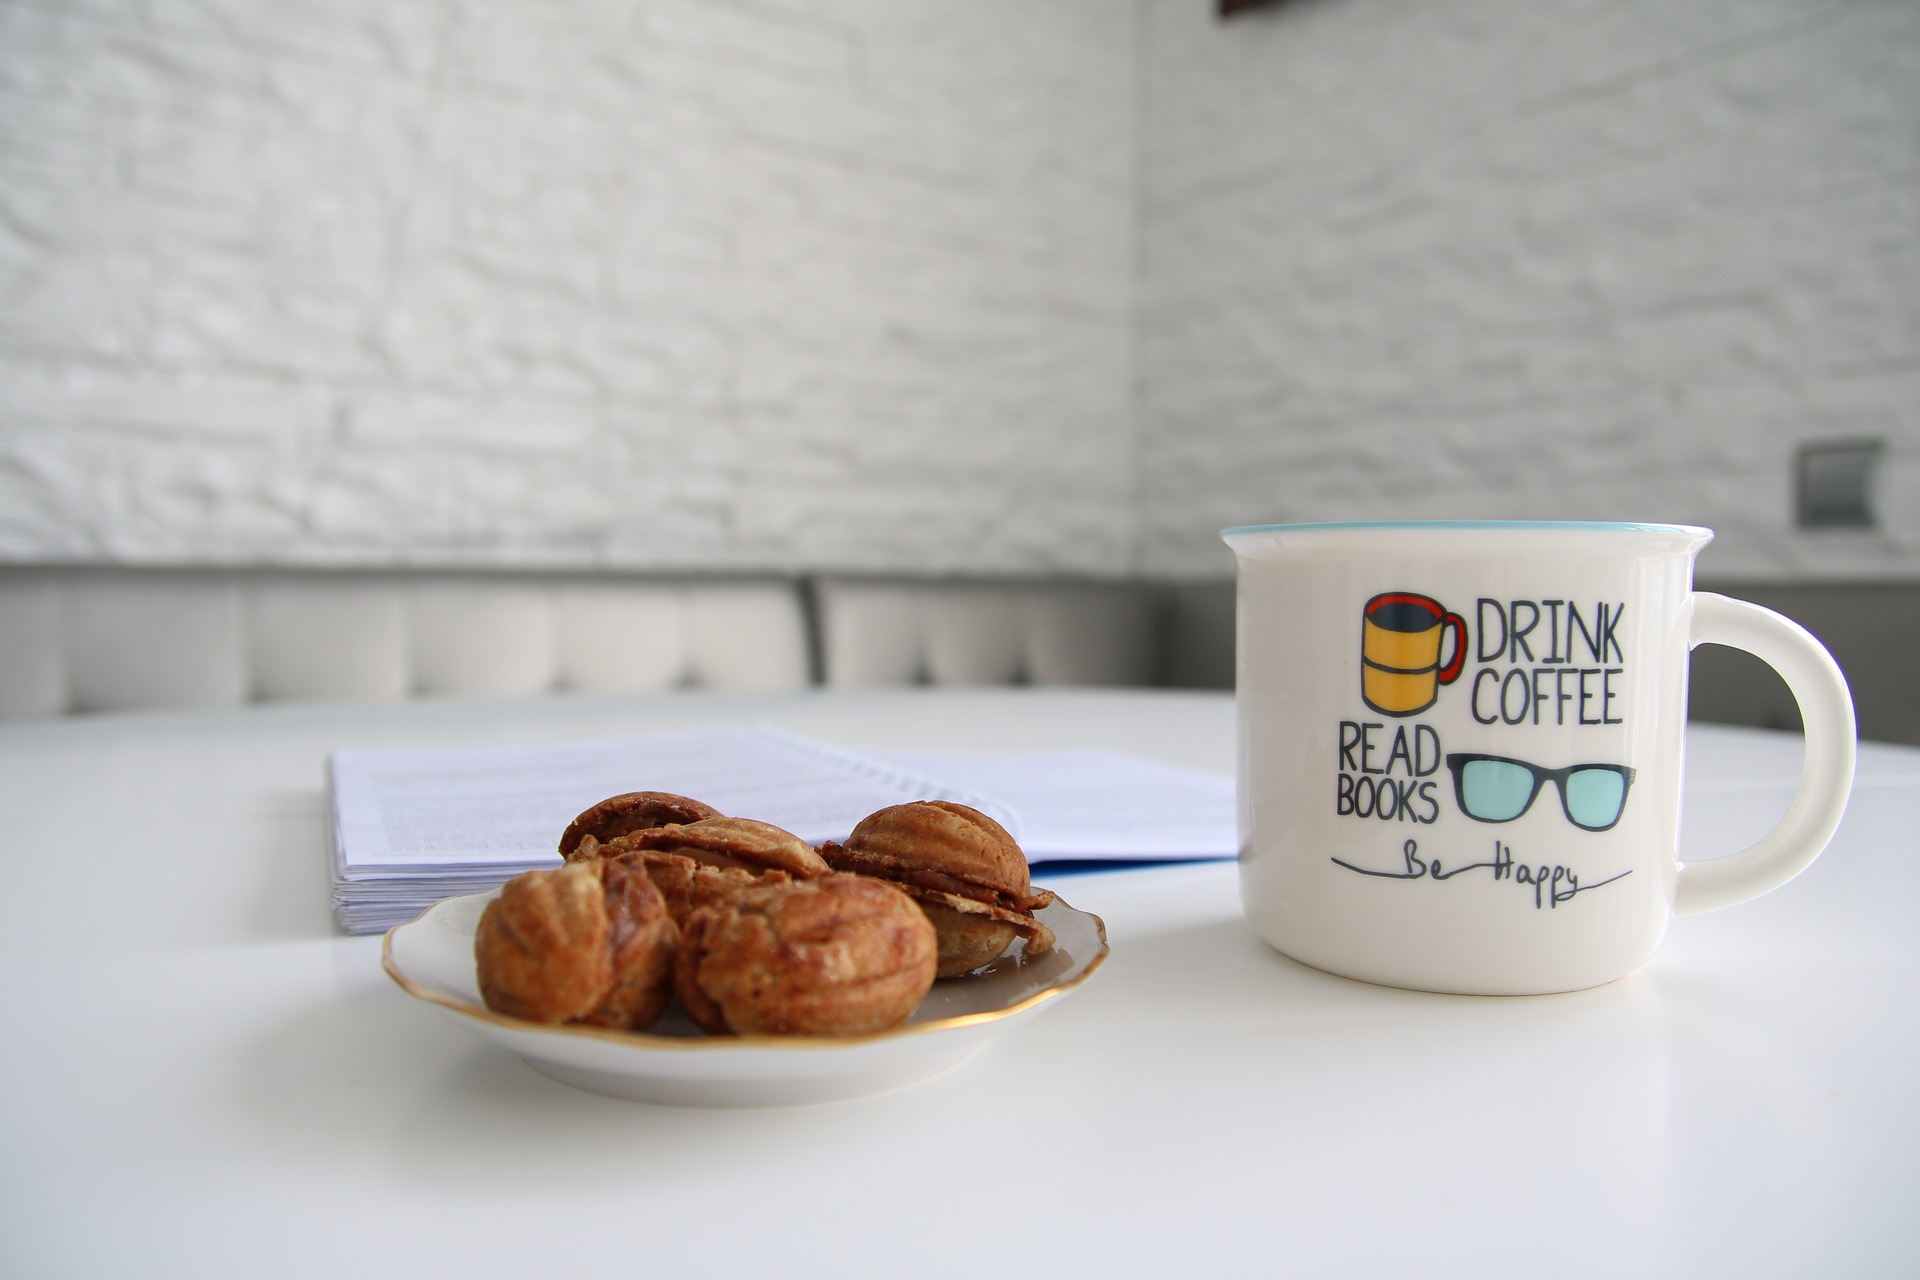 Charcute-reads: Pair some snacks with your reading this summer